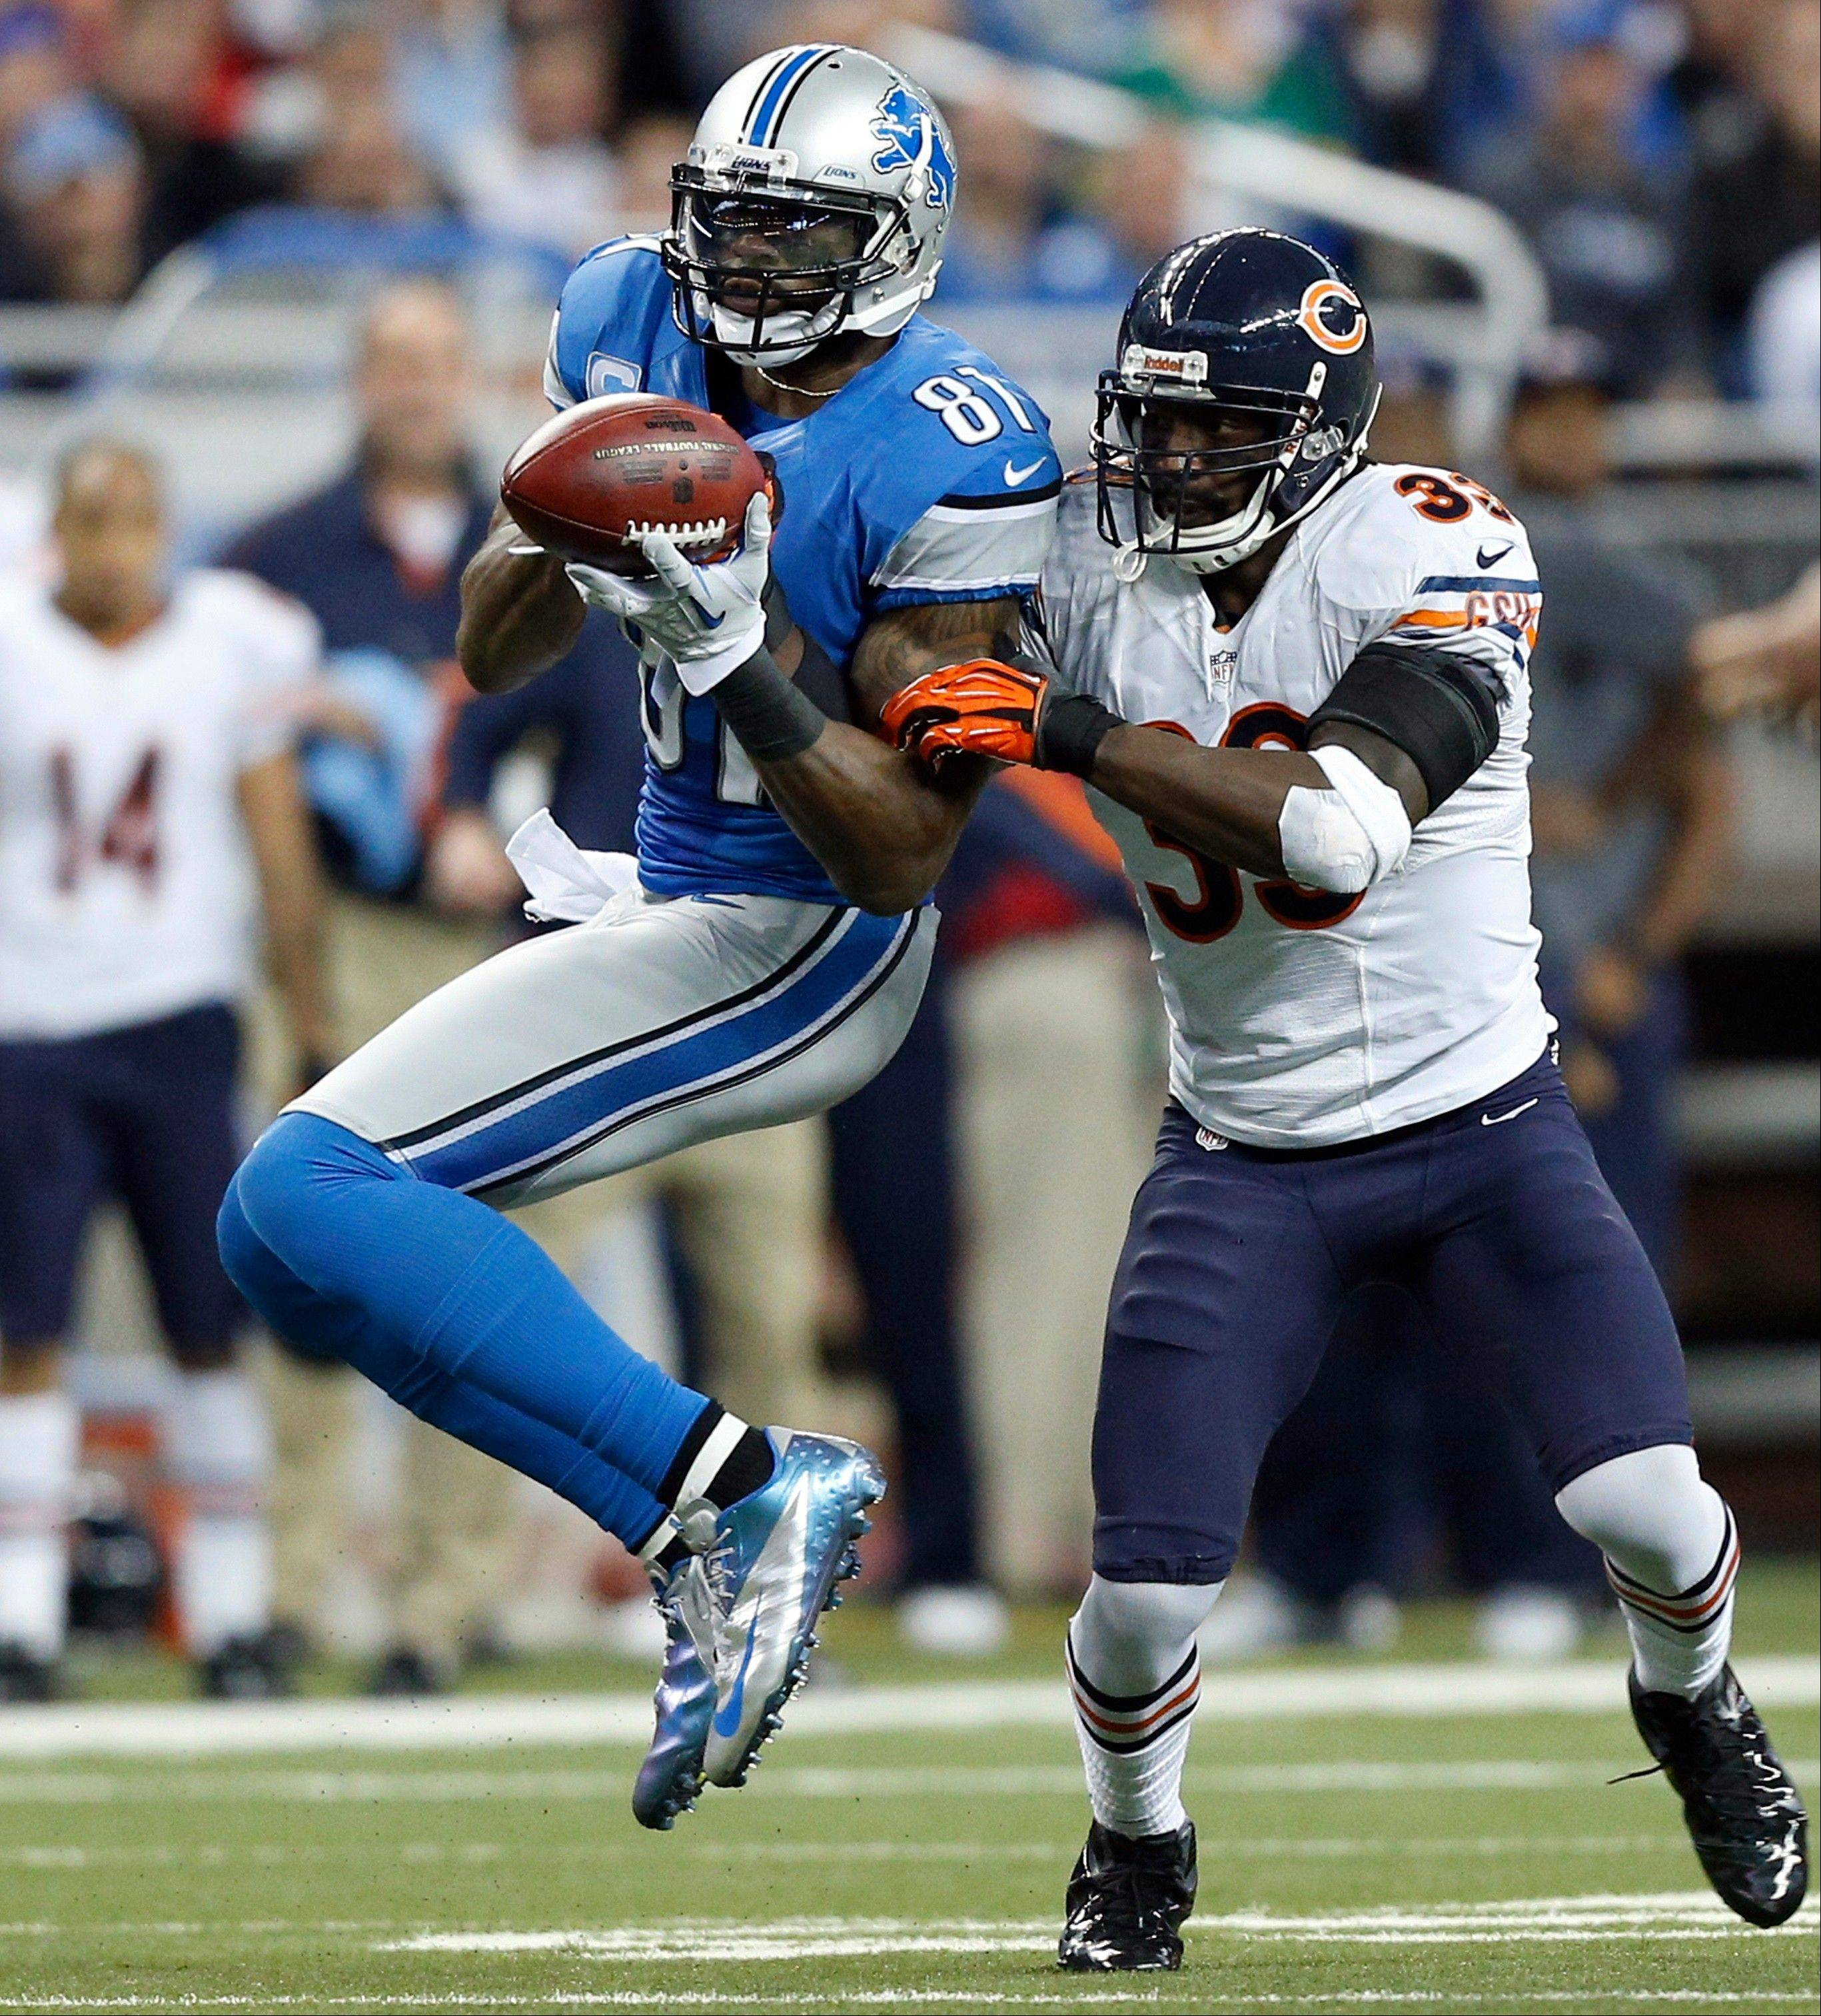 Detroit Lions wide receiver Calvin Johnson (81) bobbles and misses a catch while defended by Chicago Bears cornerback Charles Tillman (33) during the second quarter.